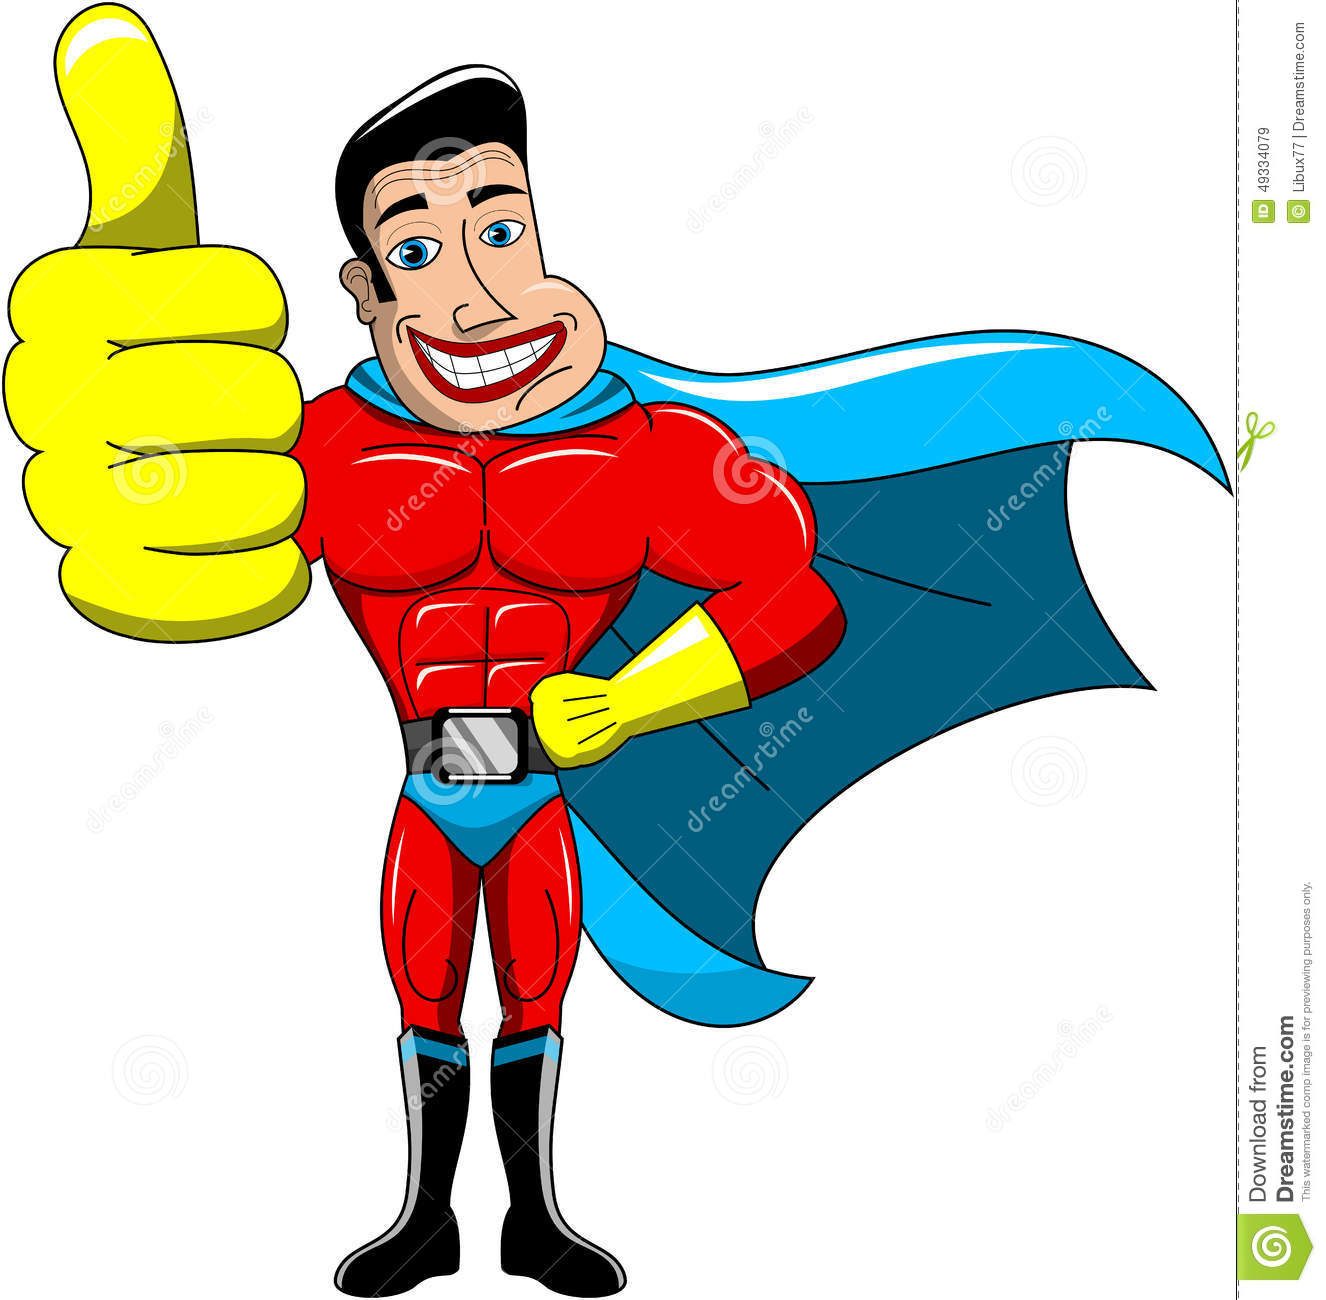 Superhero thumbs up clipart clip library download Superhero thumbs up clipart - ClipartFest clip library download